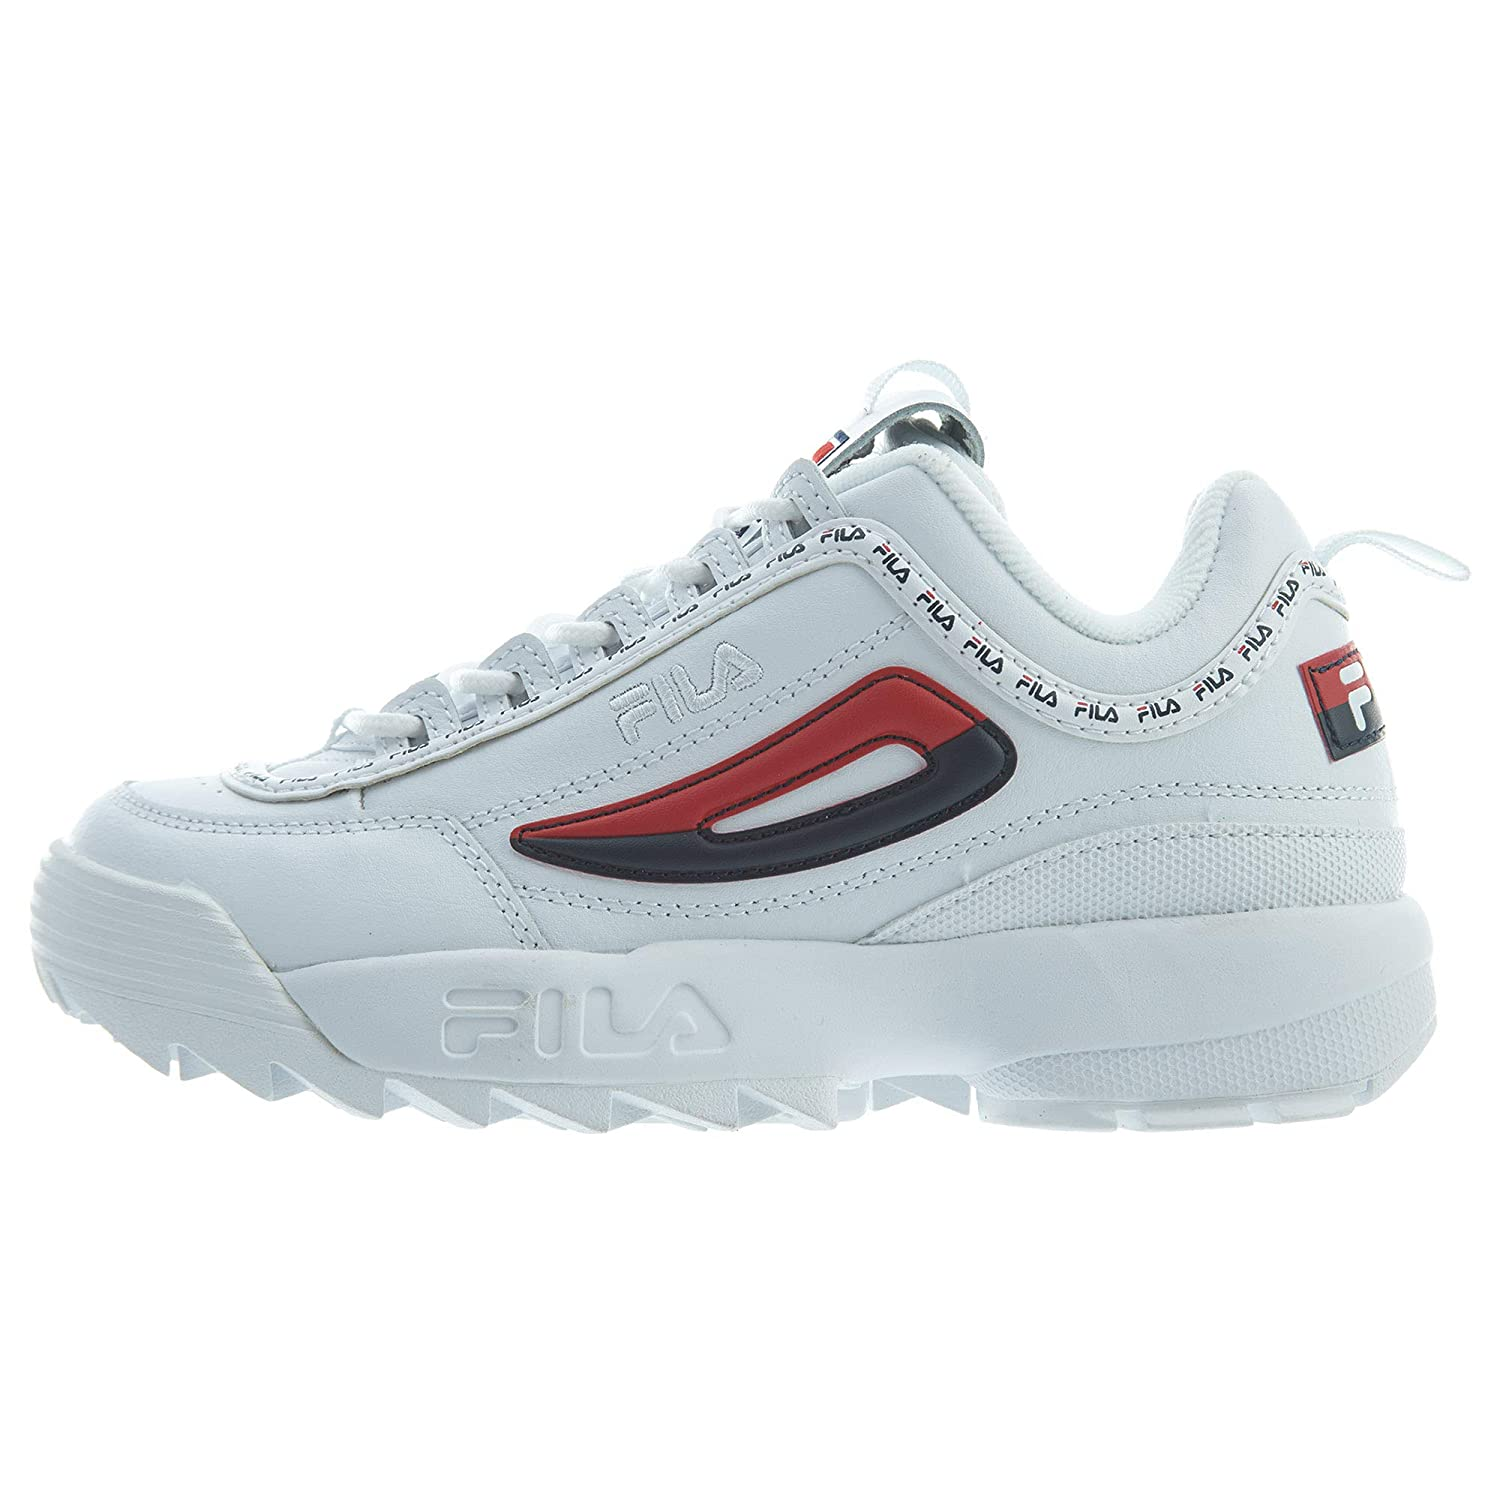 636a8f07785 Fila Women's Disruptor Ii Premium Repeat Sneakers: Amazon.ca: Shoes &  Handbags